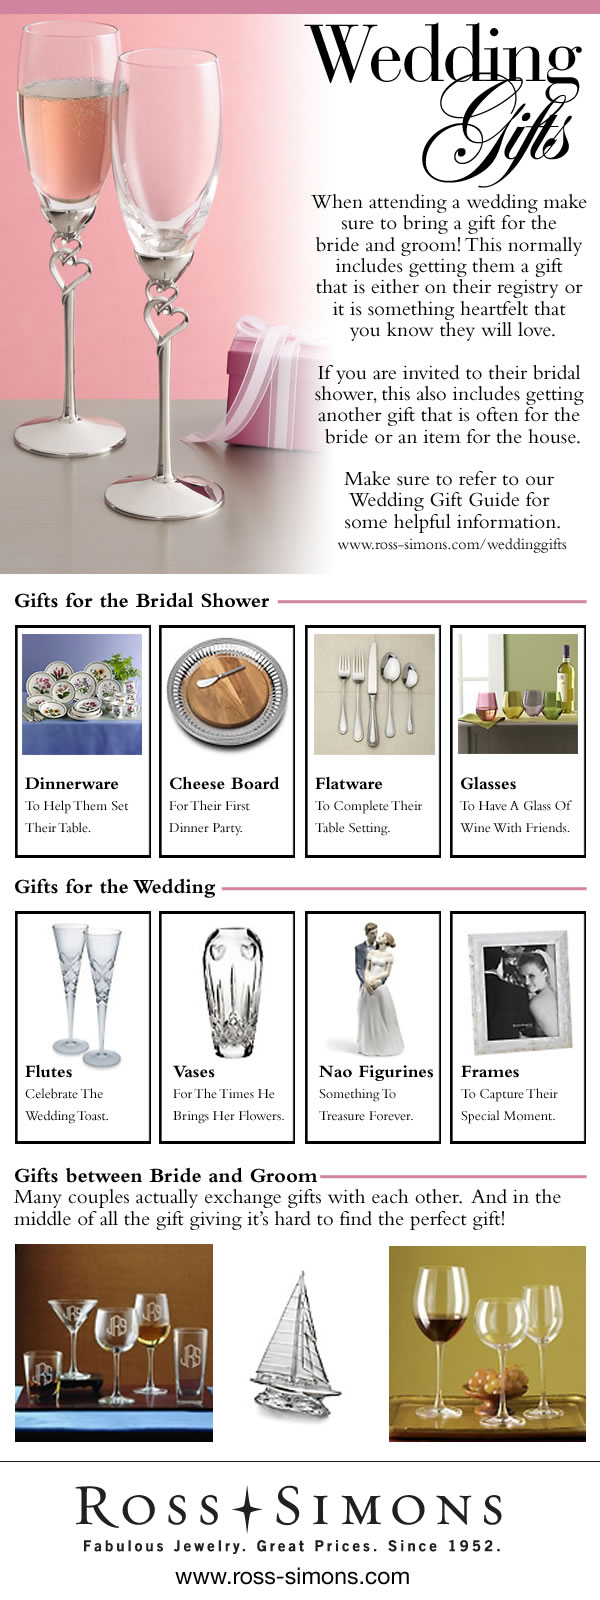 Infographic about the best gifts that are most needed and desired by brides and grooms